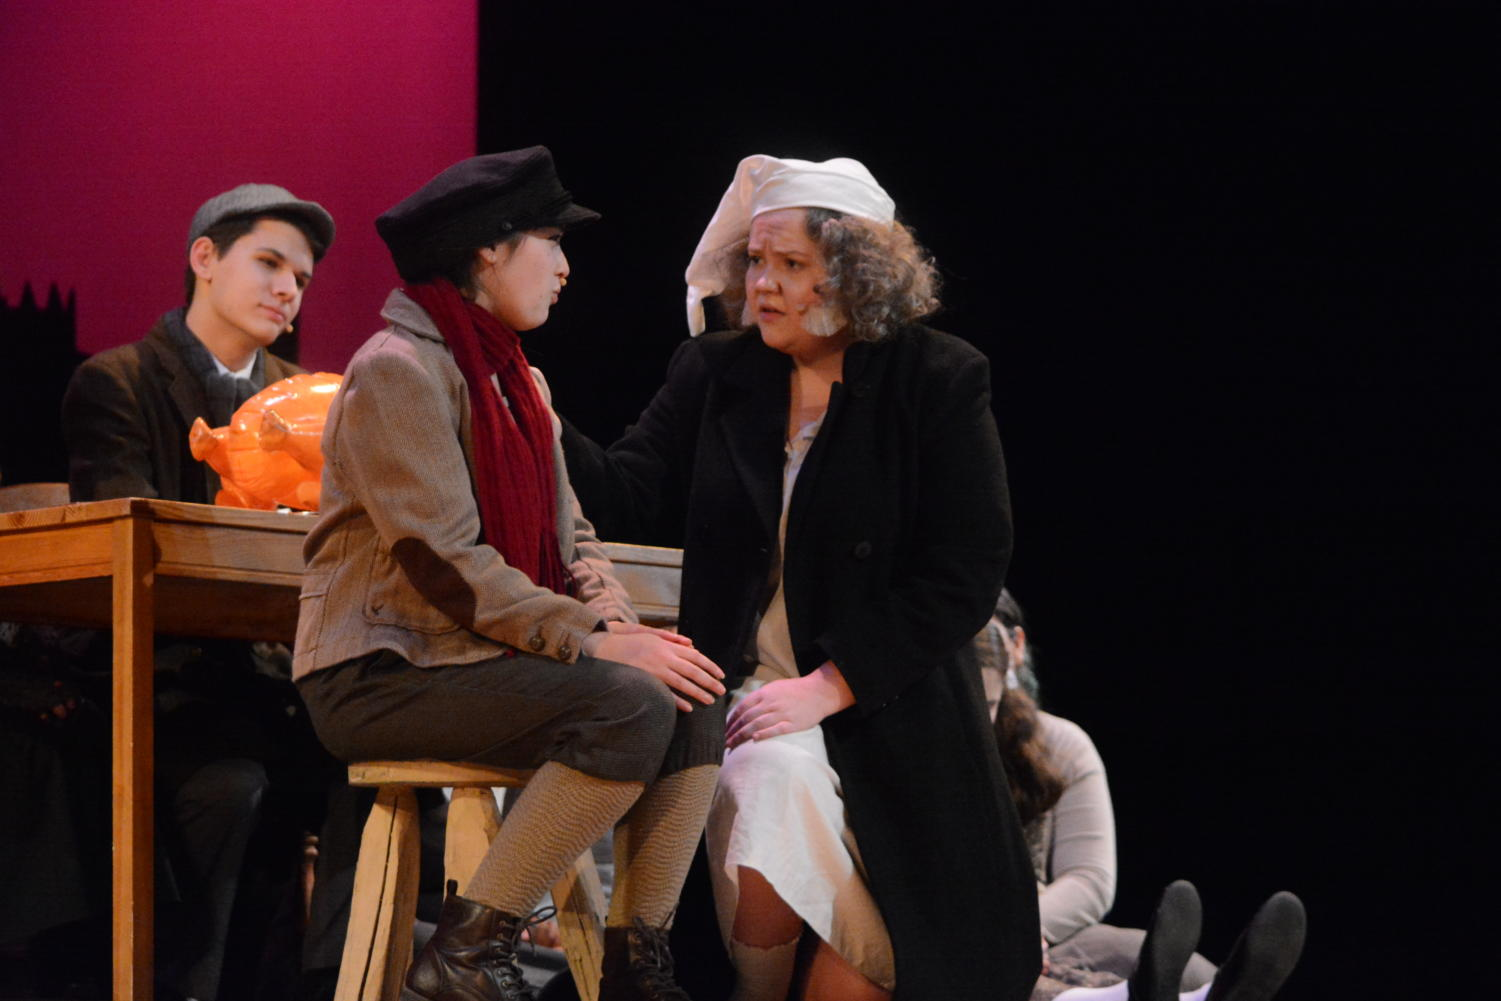 Redemption--+Ebenezer+Scrooge%2C+played+by+junior+Audrey+Lewis+%28right%29%2C+fawns+over+the+sickly+Tiny+Tim+Cratchit%2C%0Aplayed+by+sophomore+Sophie+Currier+%28left%29%2C+as+Bob+Cratchit%2C+played+by+senior+Tim+Scalzo+%28back%29%2C+looks+on.+Lewis%2C%0Awho+had+been+originally+casted+as+Mrs.+Cratchit%2C+took+on+the+role+of+Scrooge+around+a+month+prior+to+the+opening%0Aperformance.